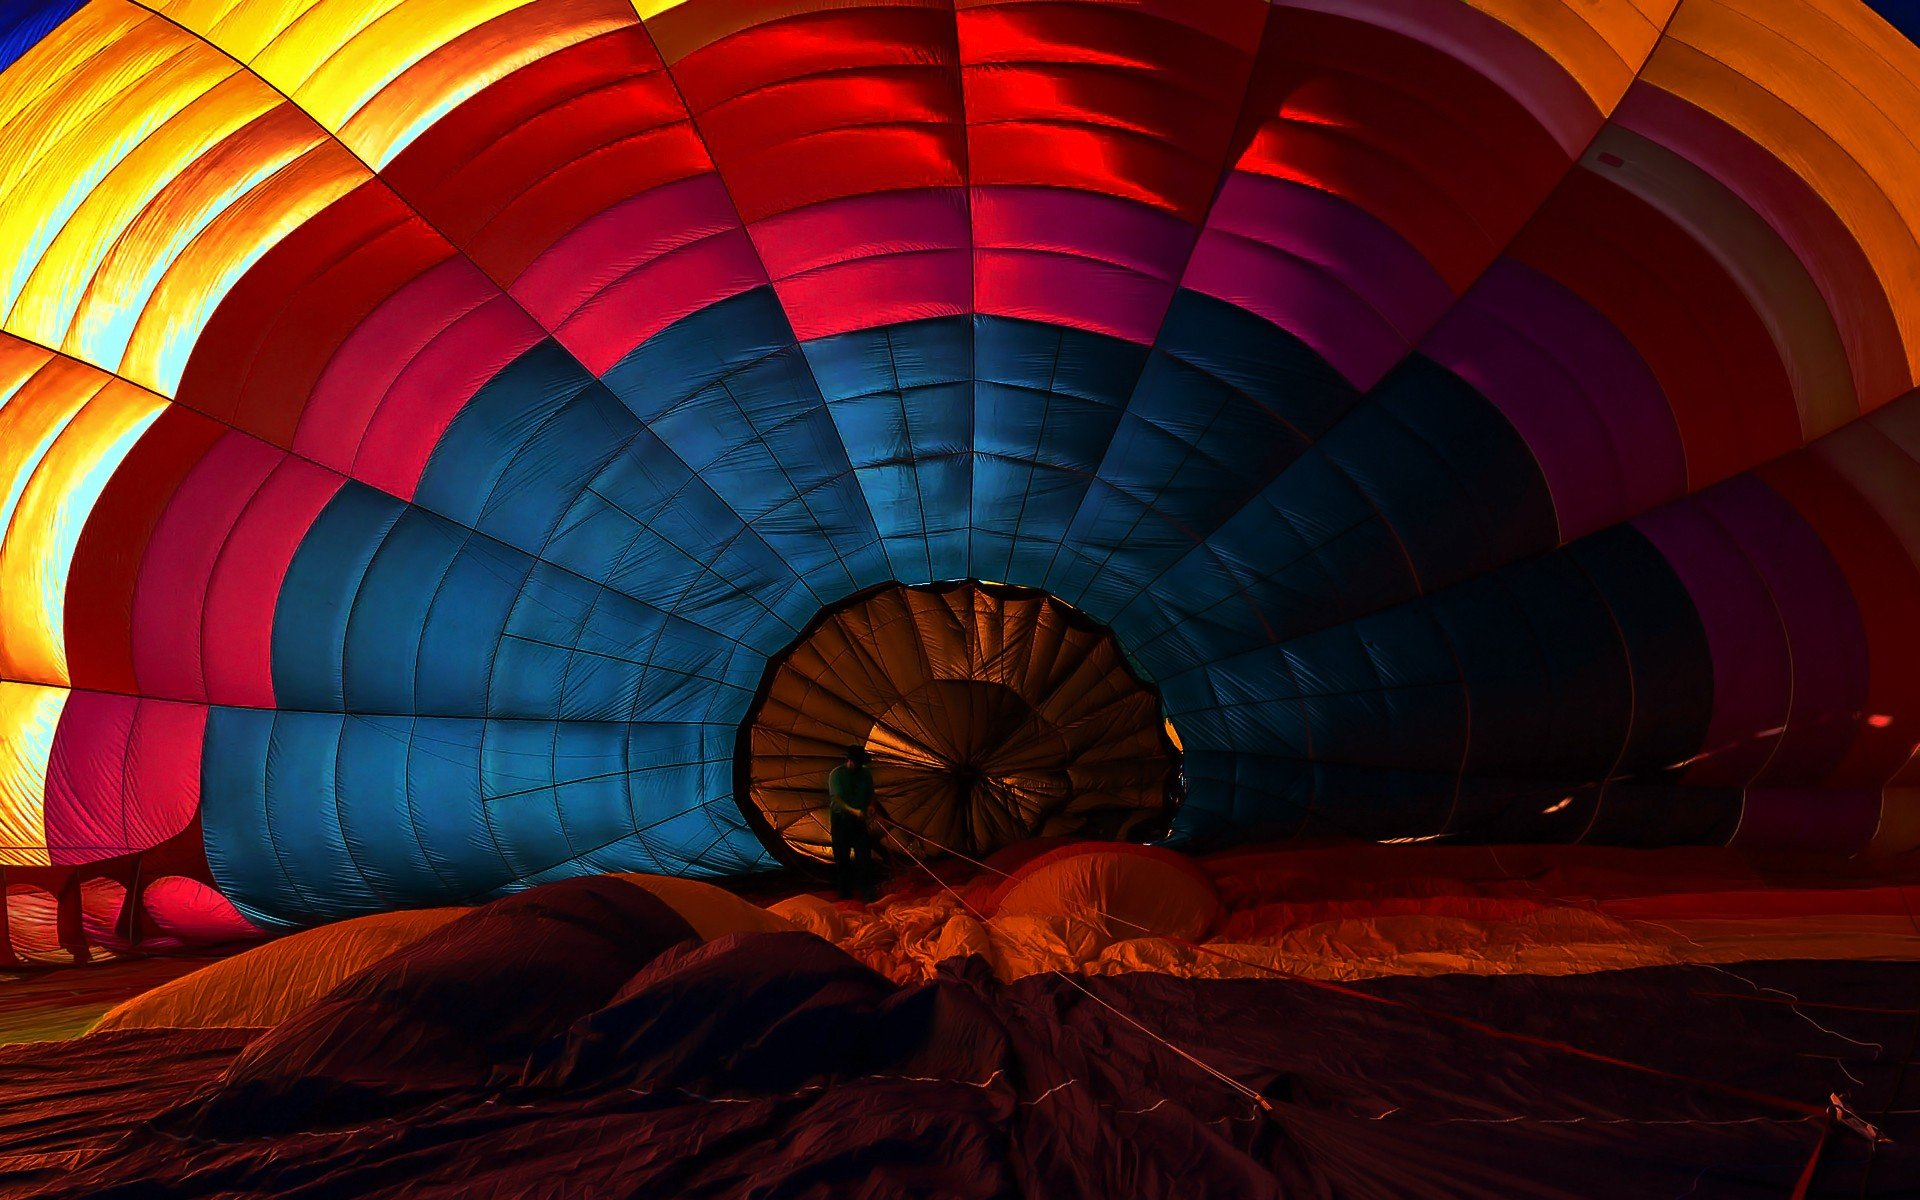 Colorful, Red, Sunset, Blue, Yellow, Pink, Hot Air